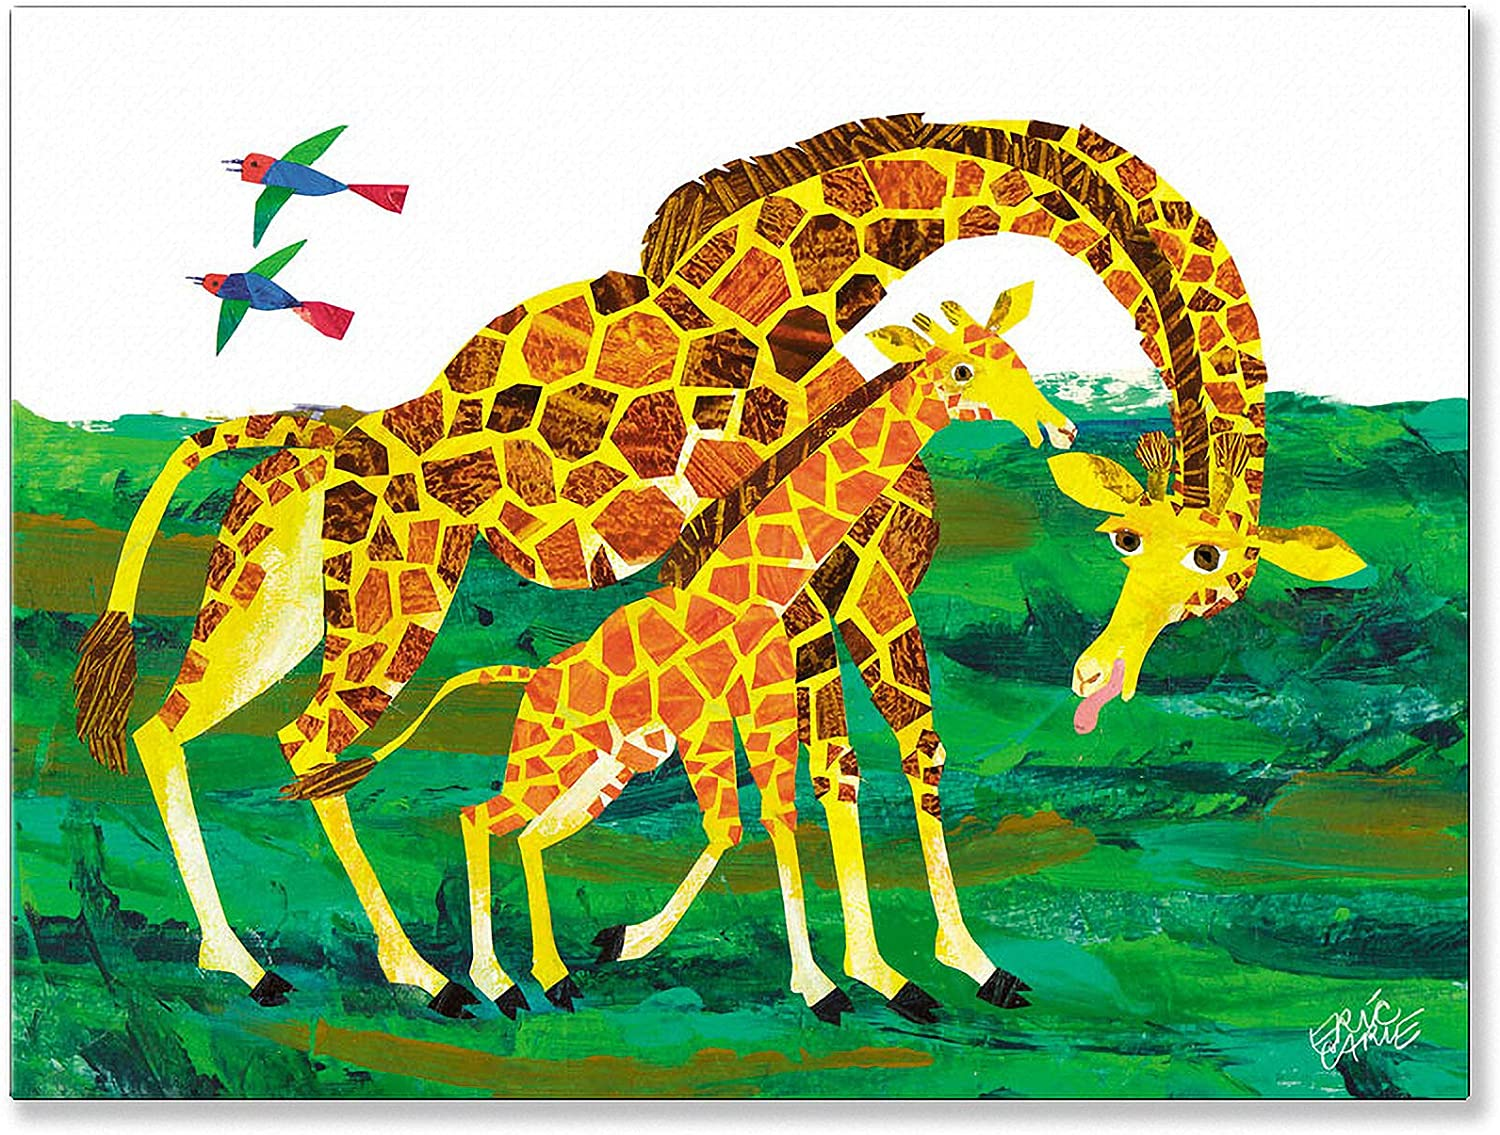 Oopsy Daisy Eric Carle's Giraffe Mother Wall Art, 24 by 18